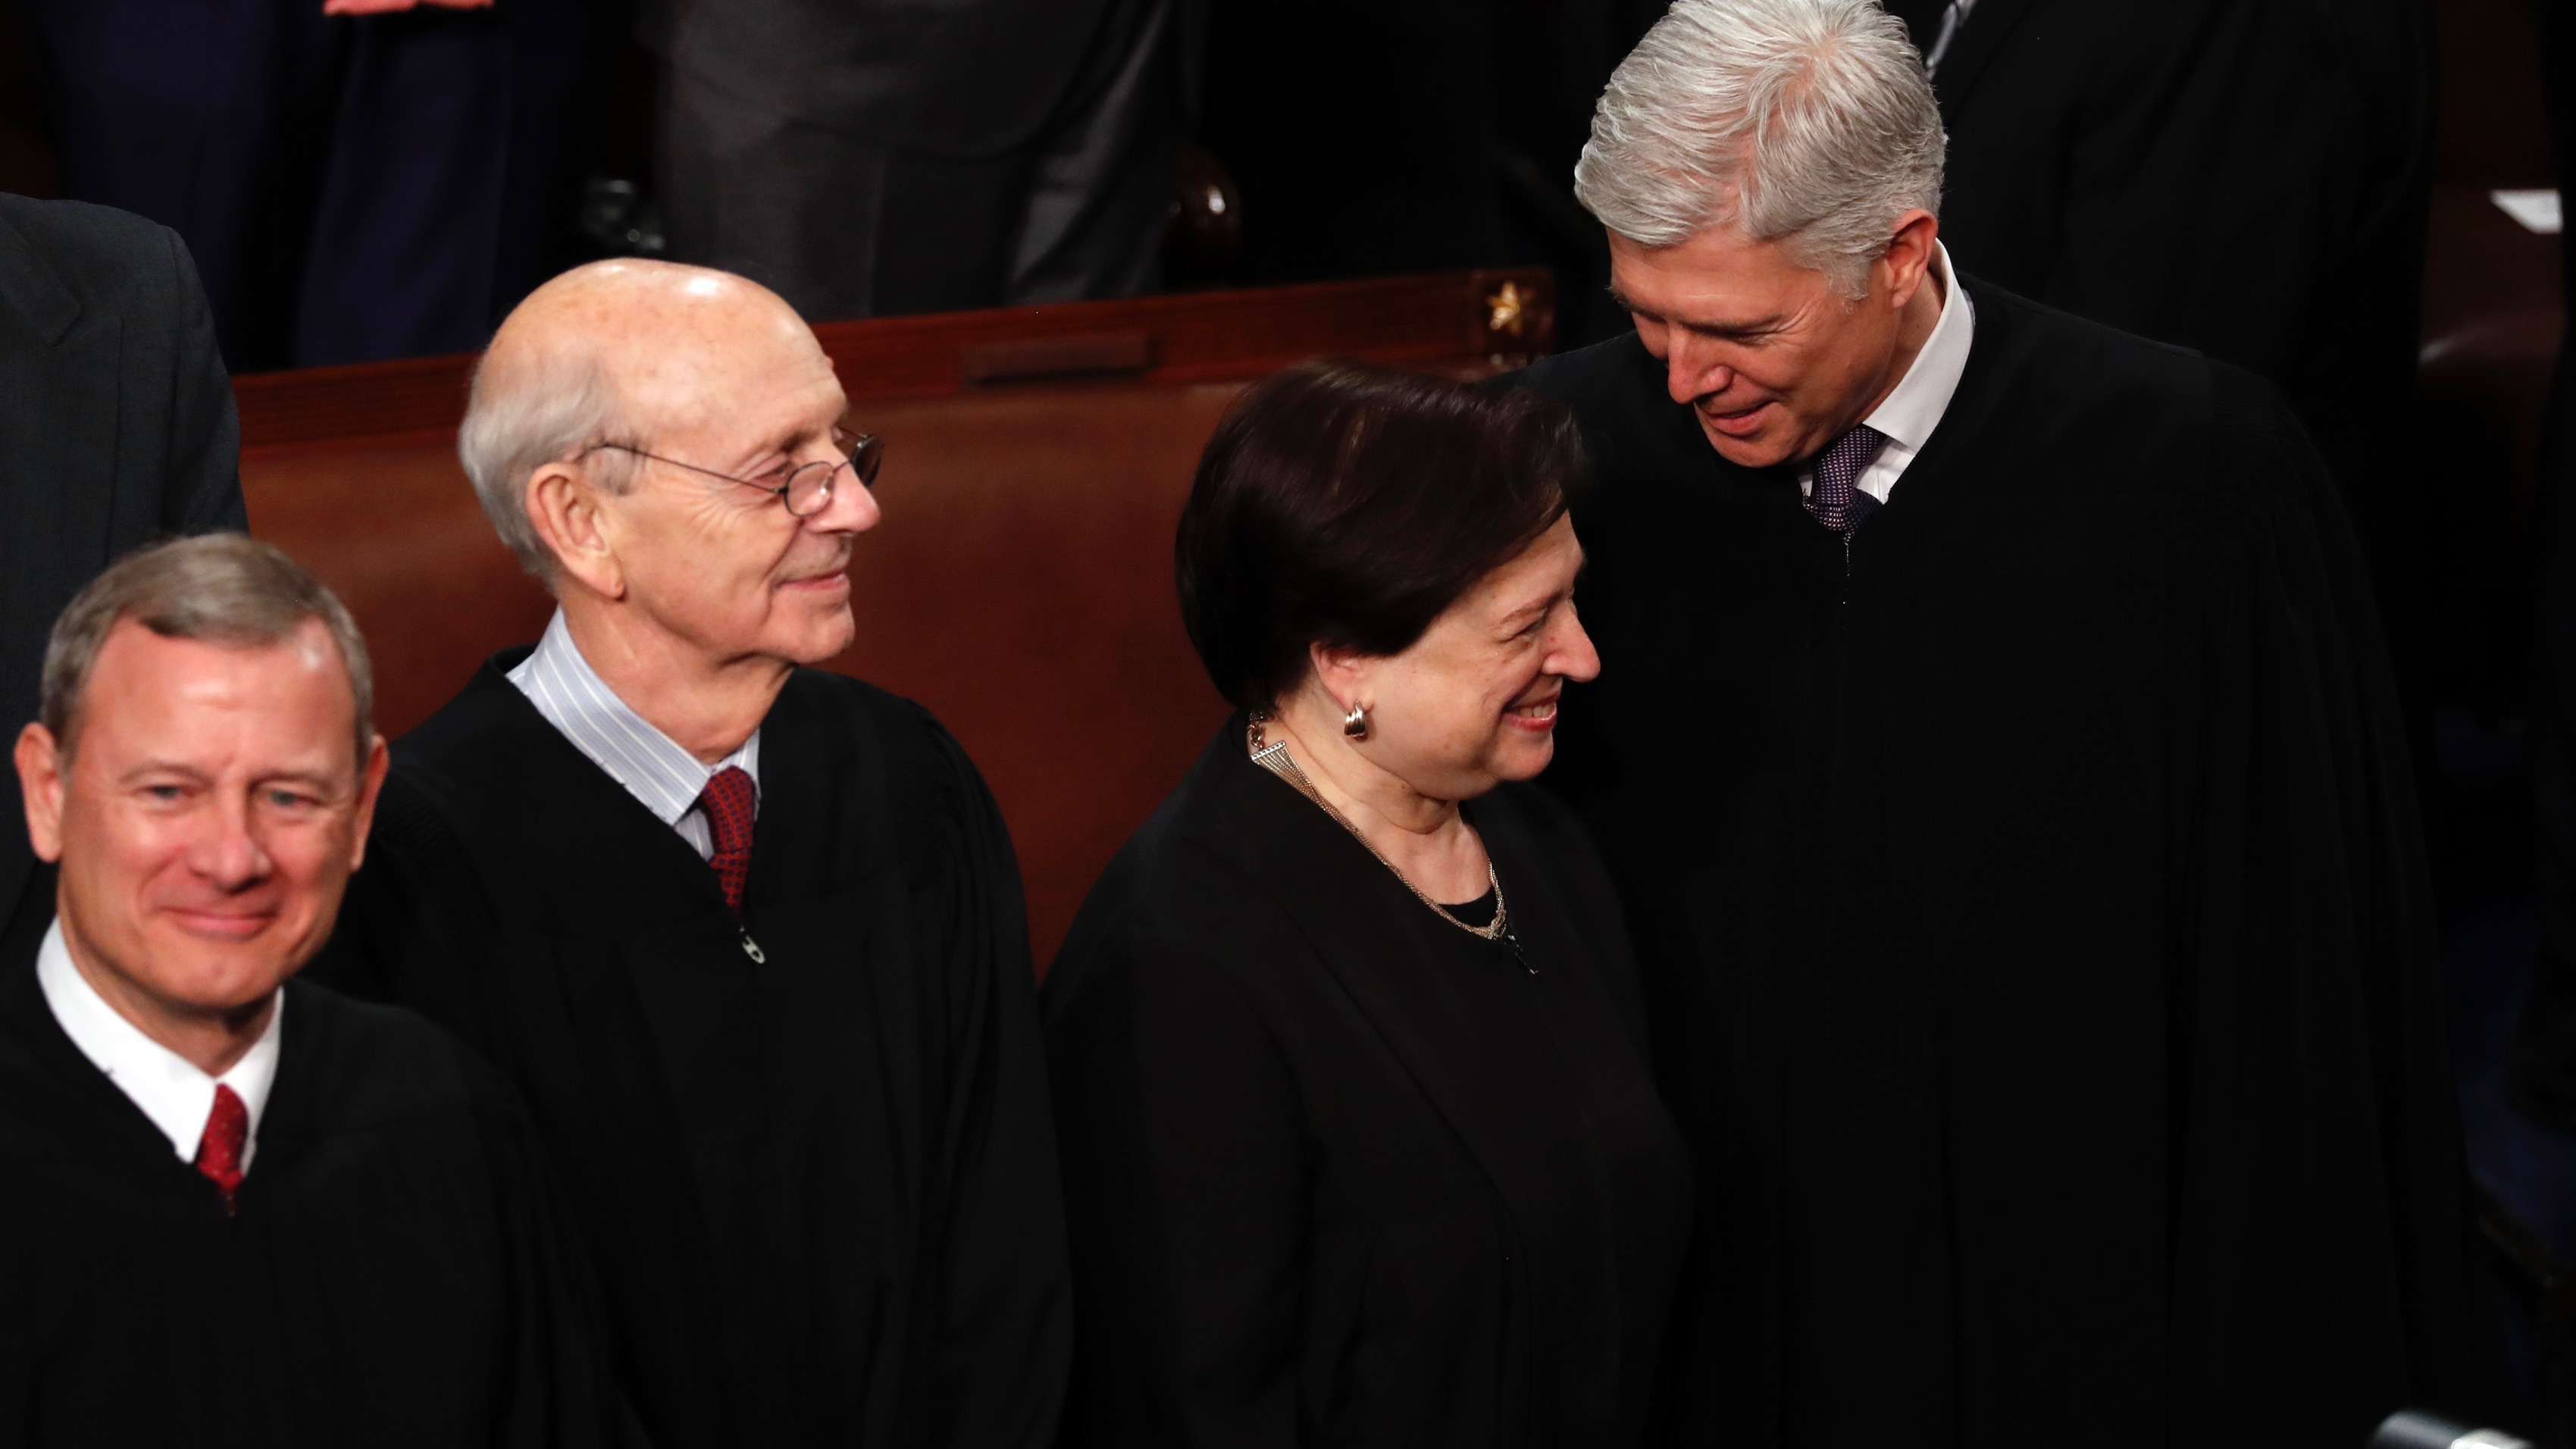 US Supreme Court Justices John Roberts, Stephen Breyer, Elena Kagan and Neil Gorsuch, amused on Jan. 30, 2018.